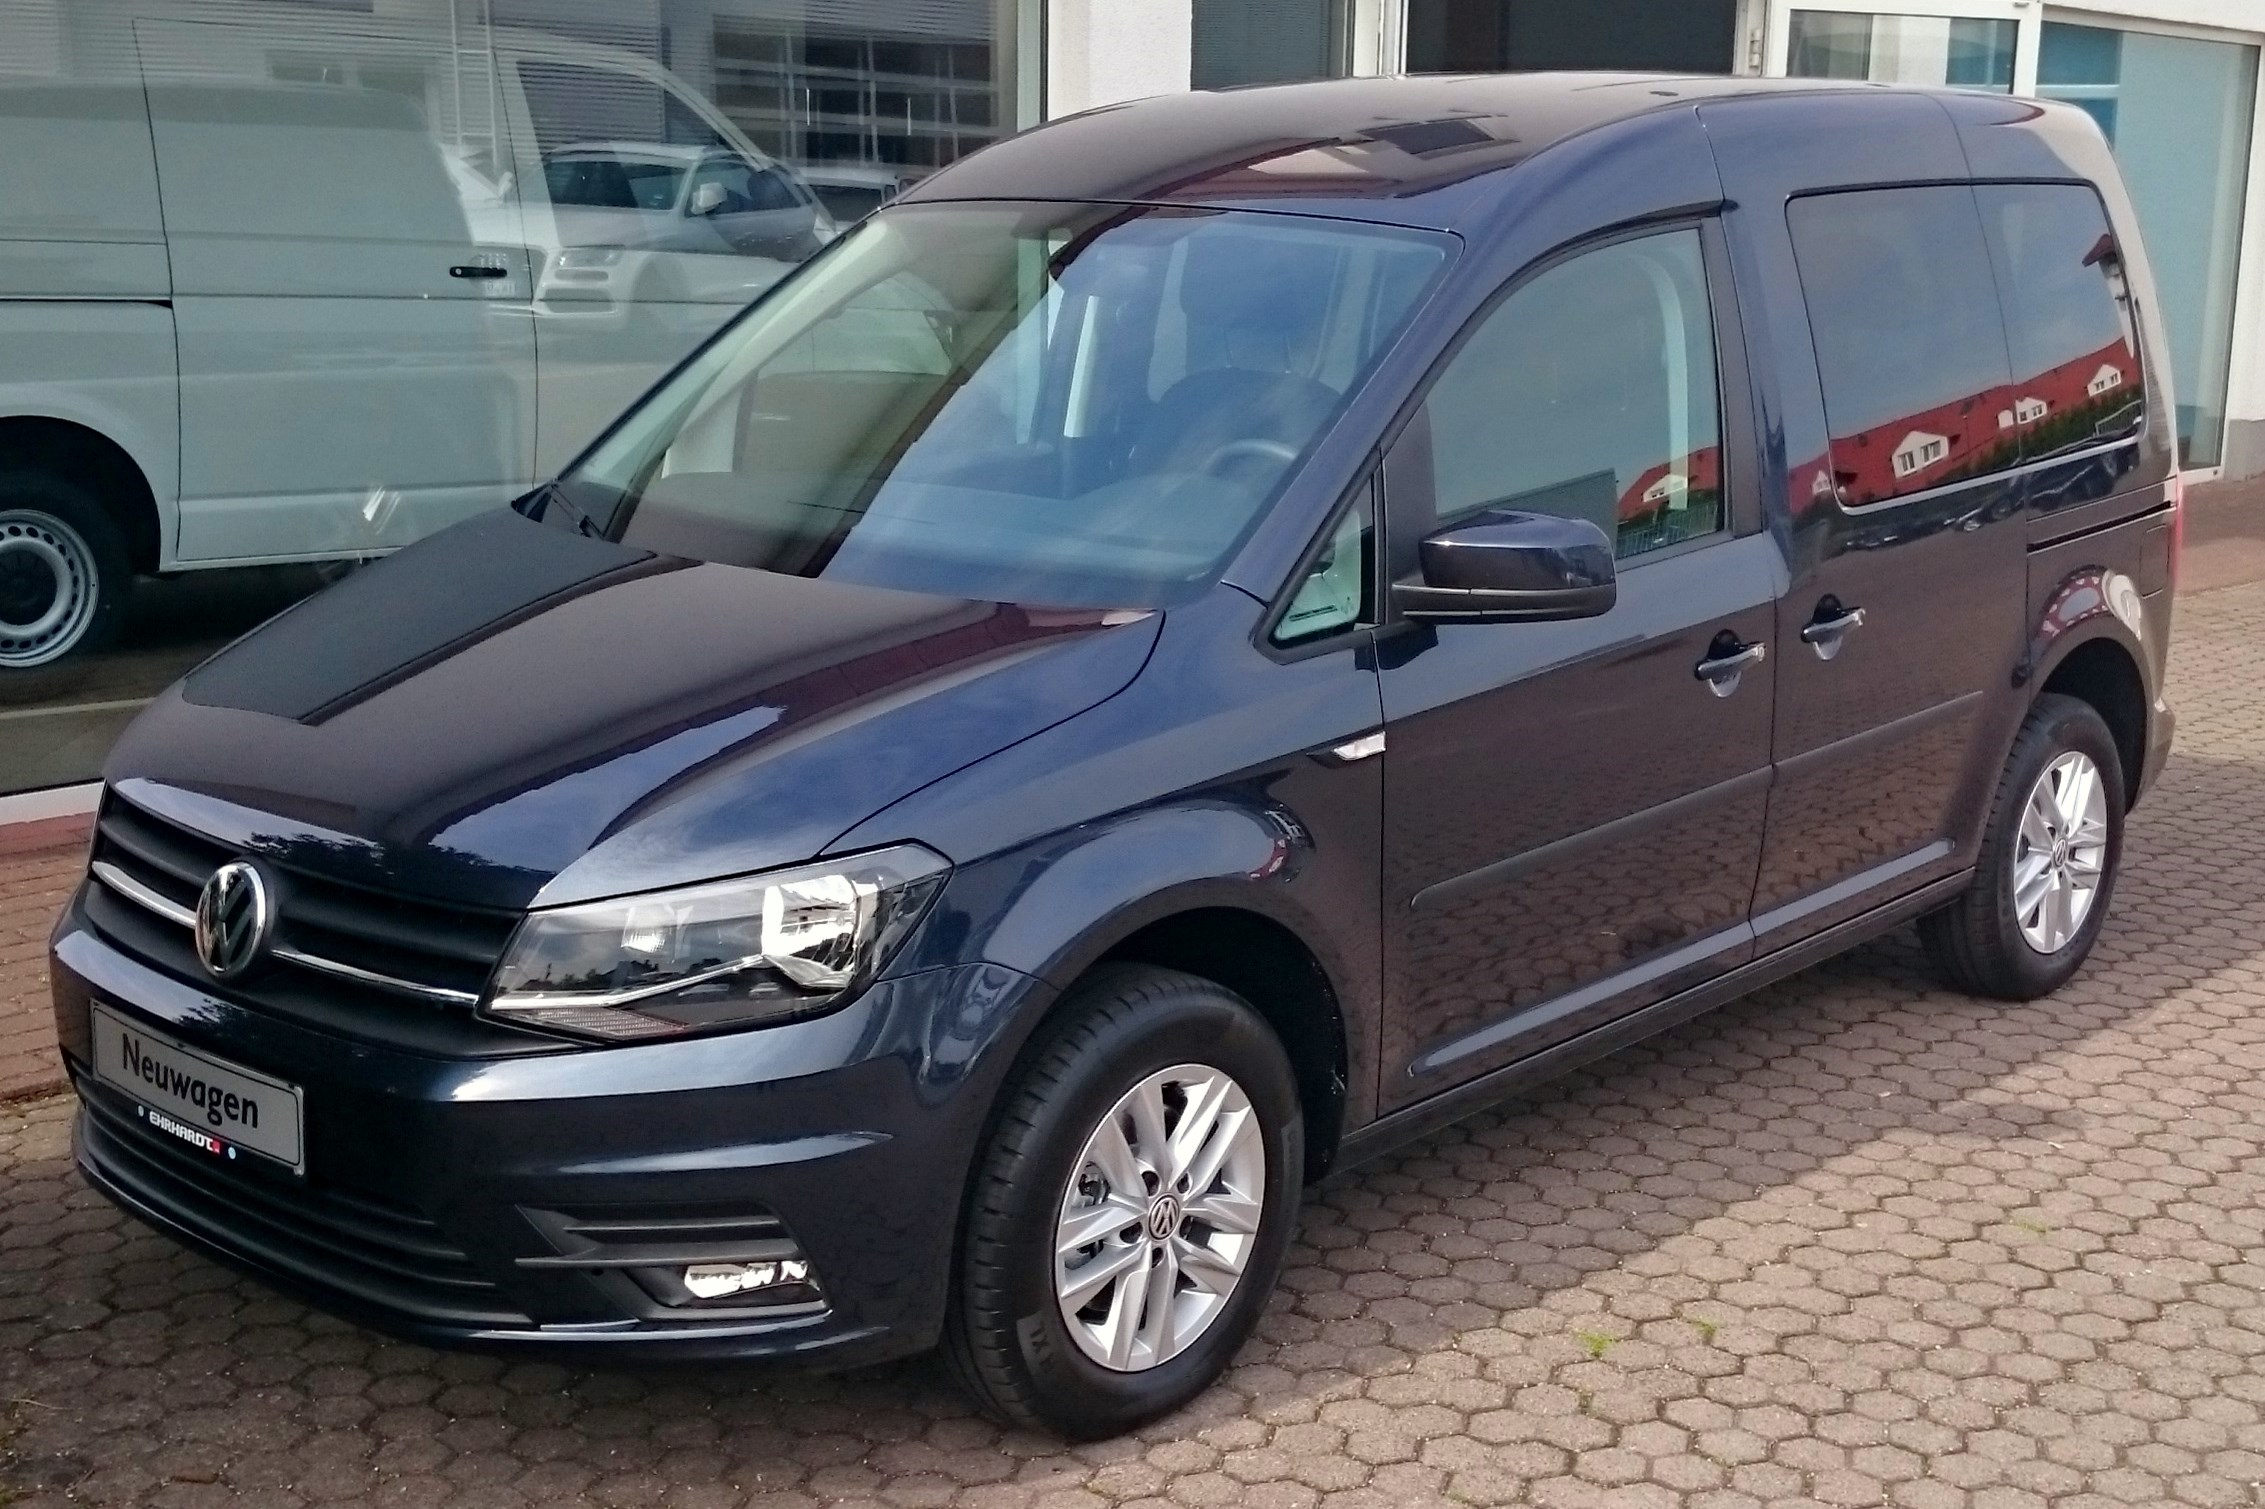 file:vw caddy 4 2.0 tdi - wikimedia commons